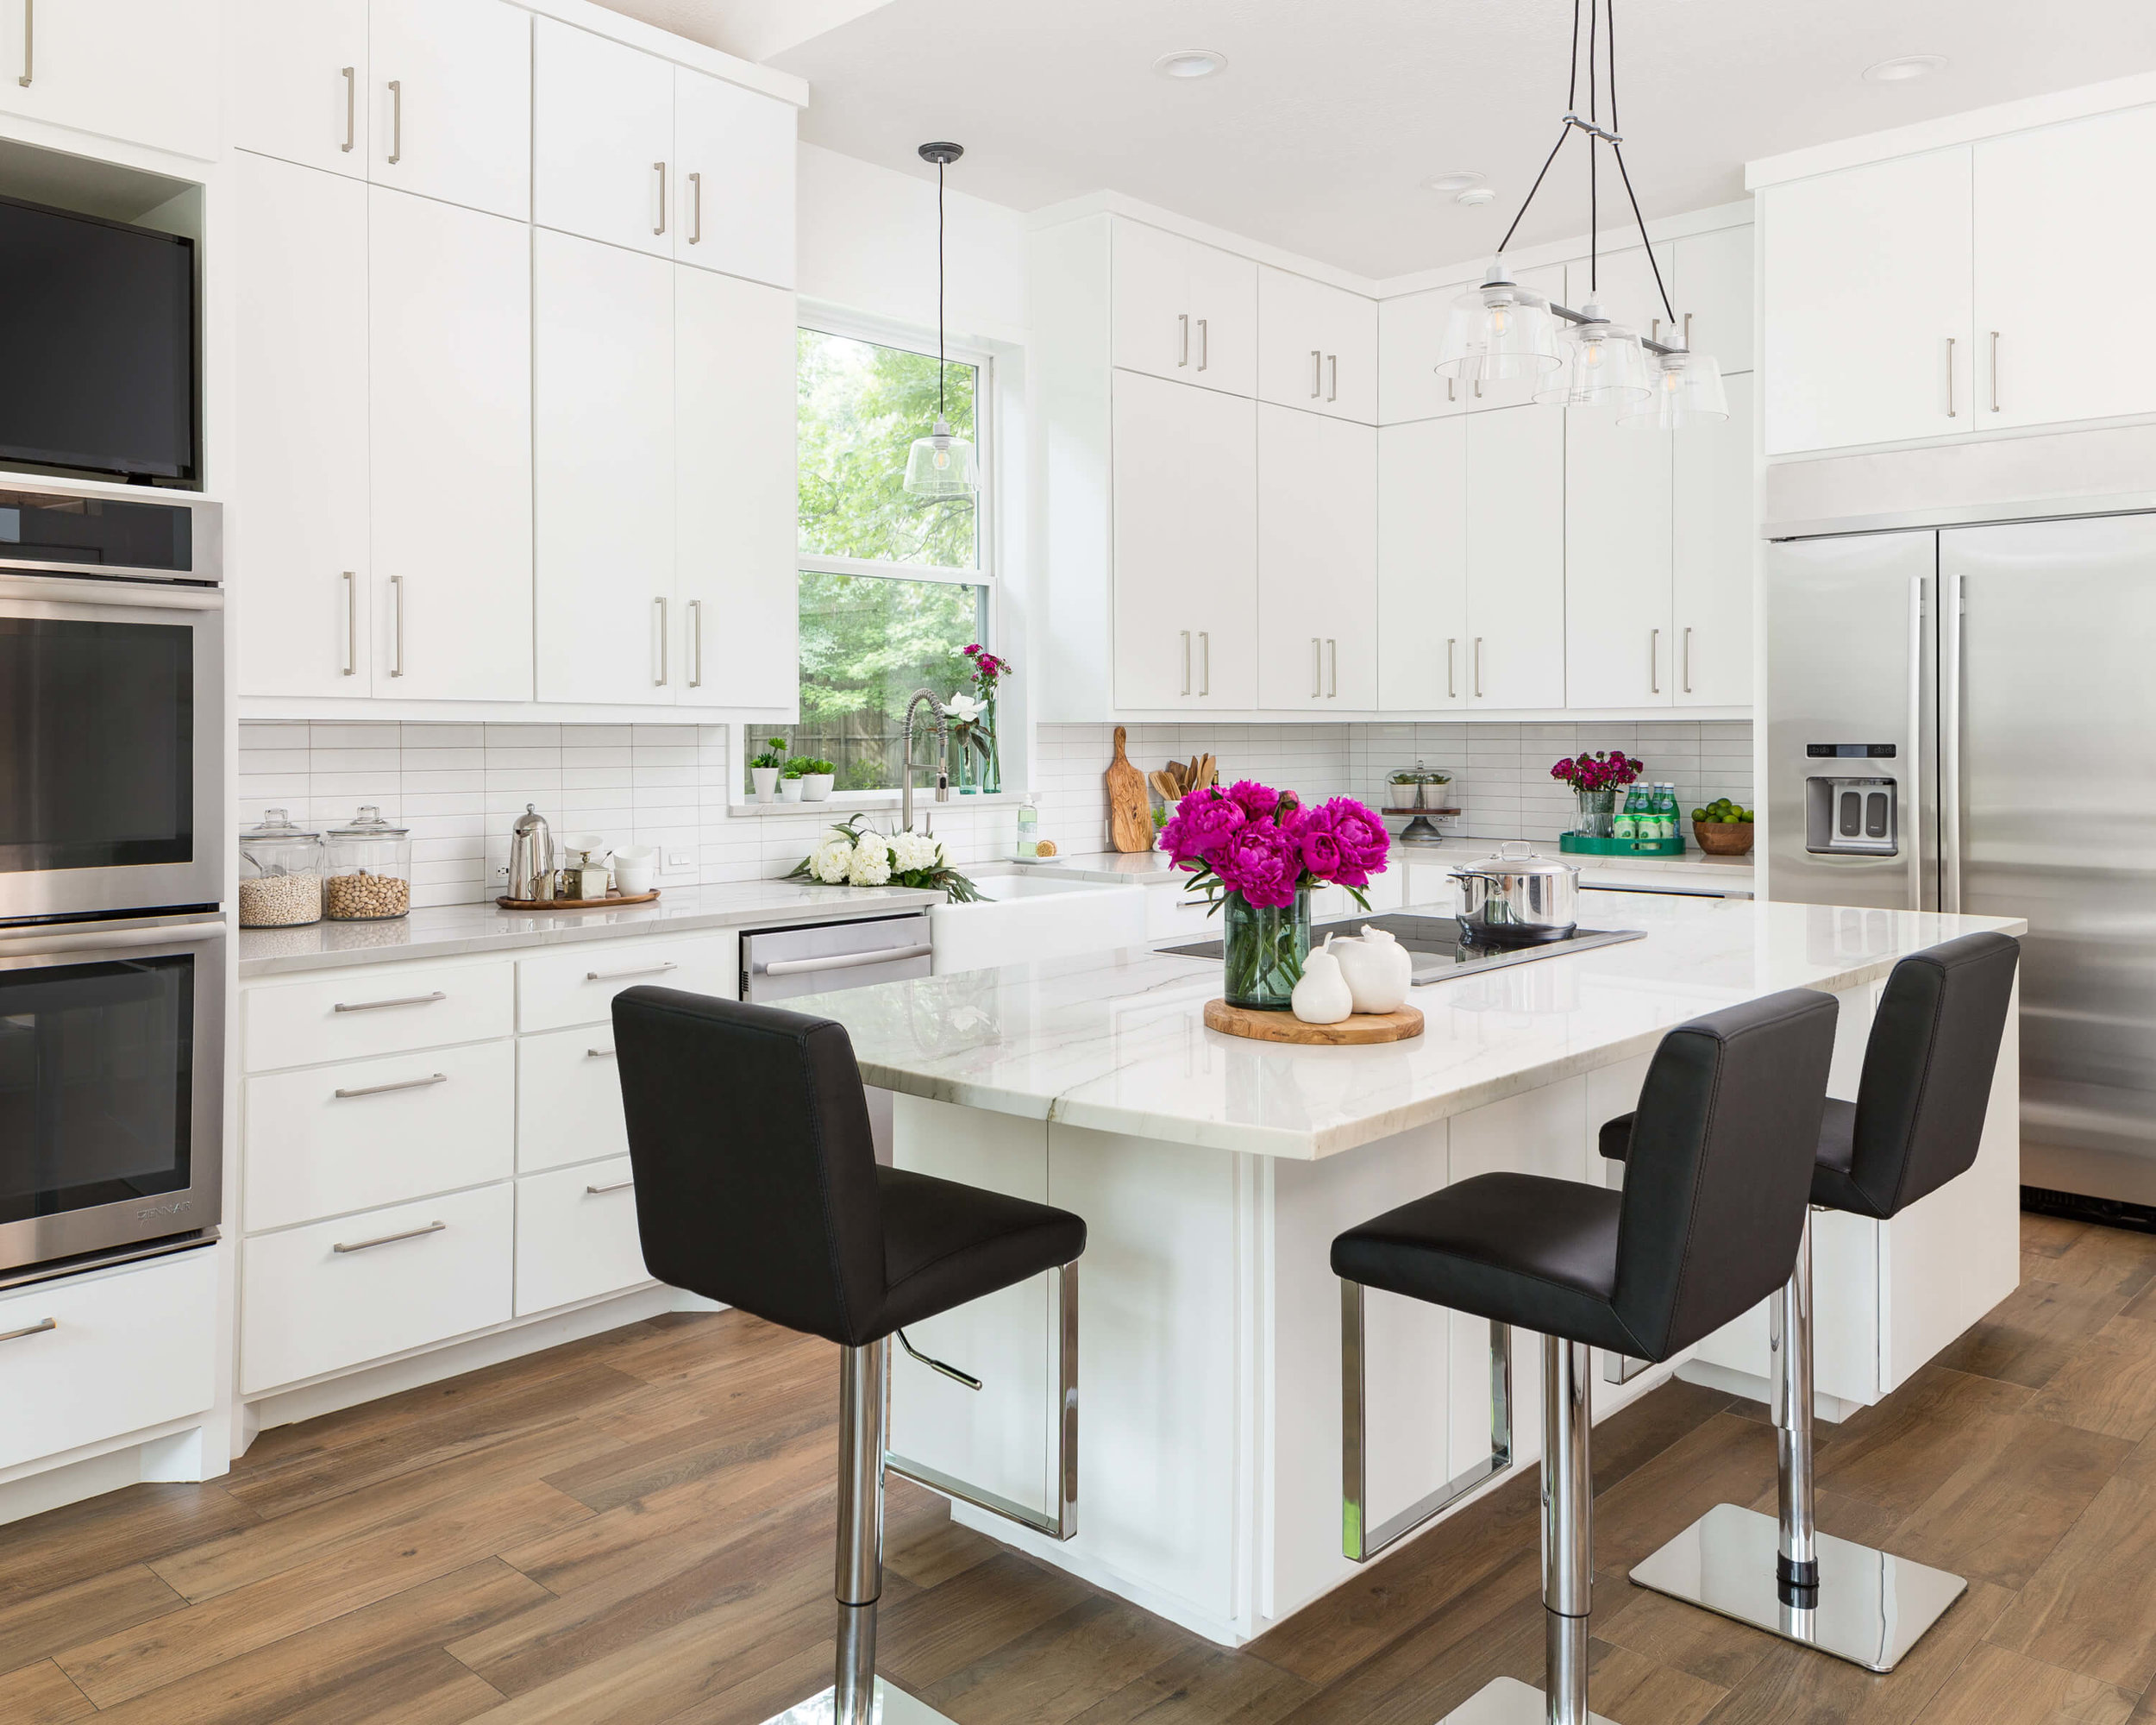 AFTER - This kitchen went from very dated and dark to all white and bright! See the transformation….Carla Aston, Designer | Colleen Scott, Photographer #whitekitchen #kitchenideas